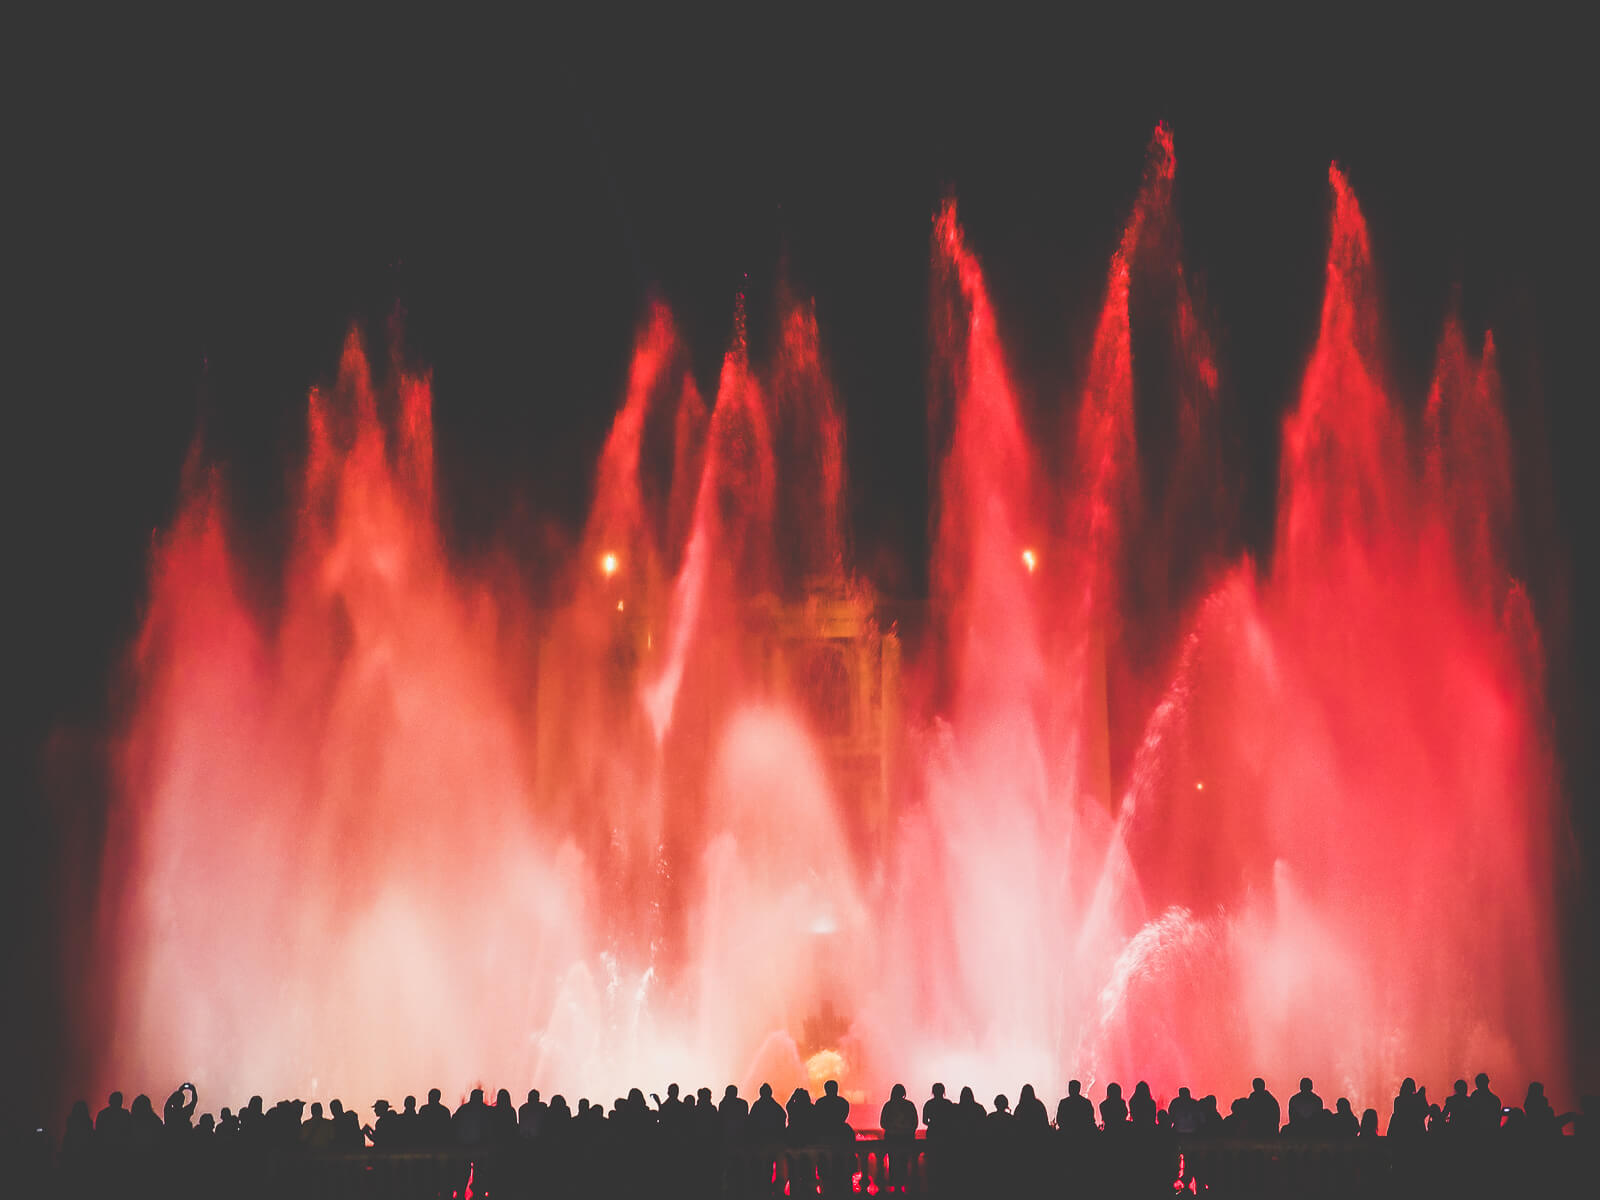 Barcelona Street Photography, Montjuic fountain, people silhouette spectating, red water